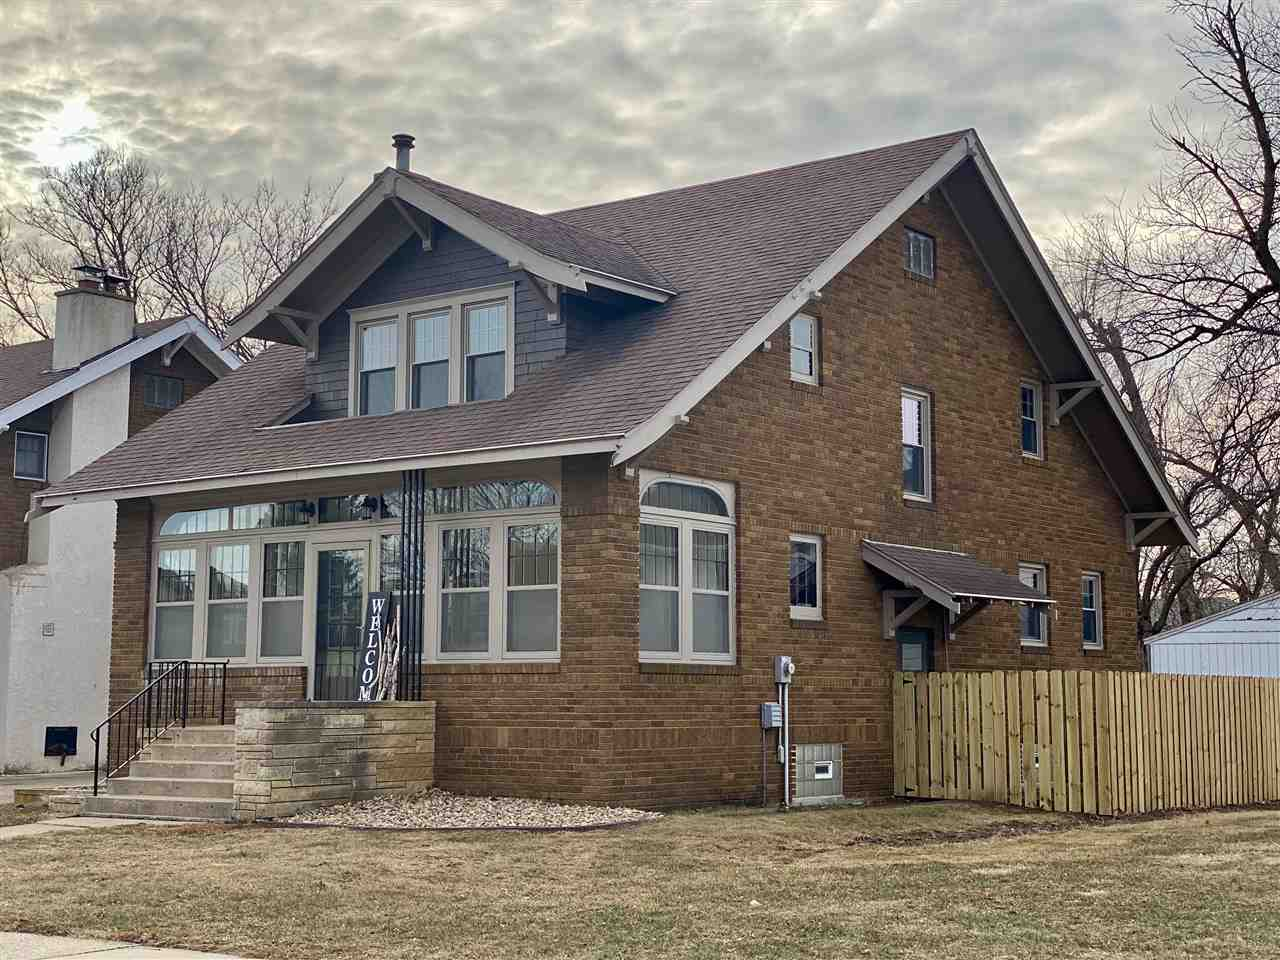 MLS# 202068 for Sale